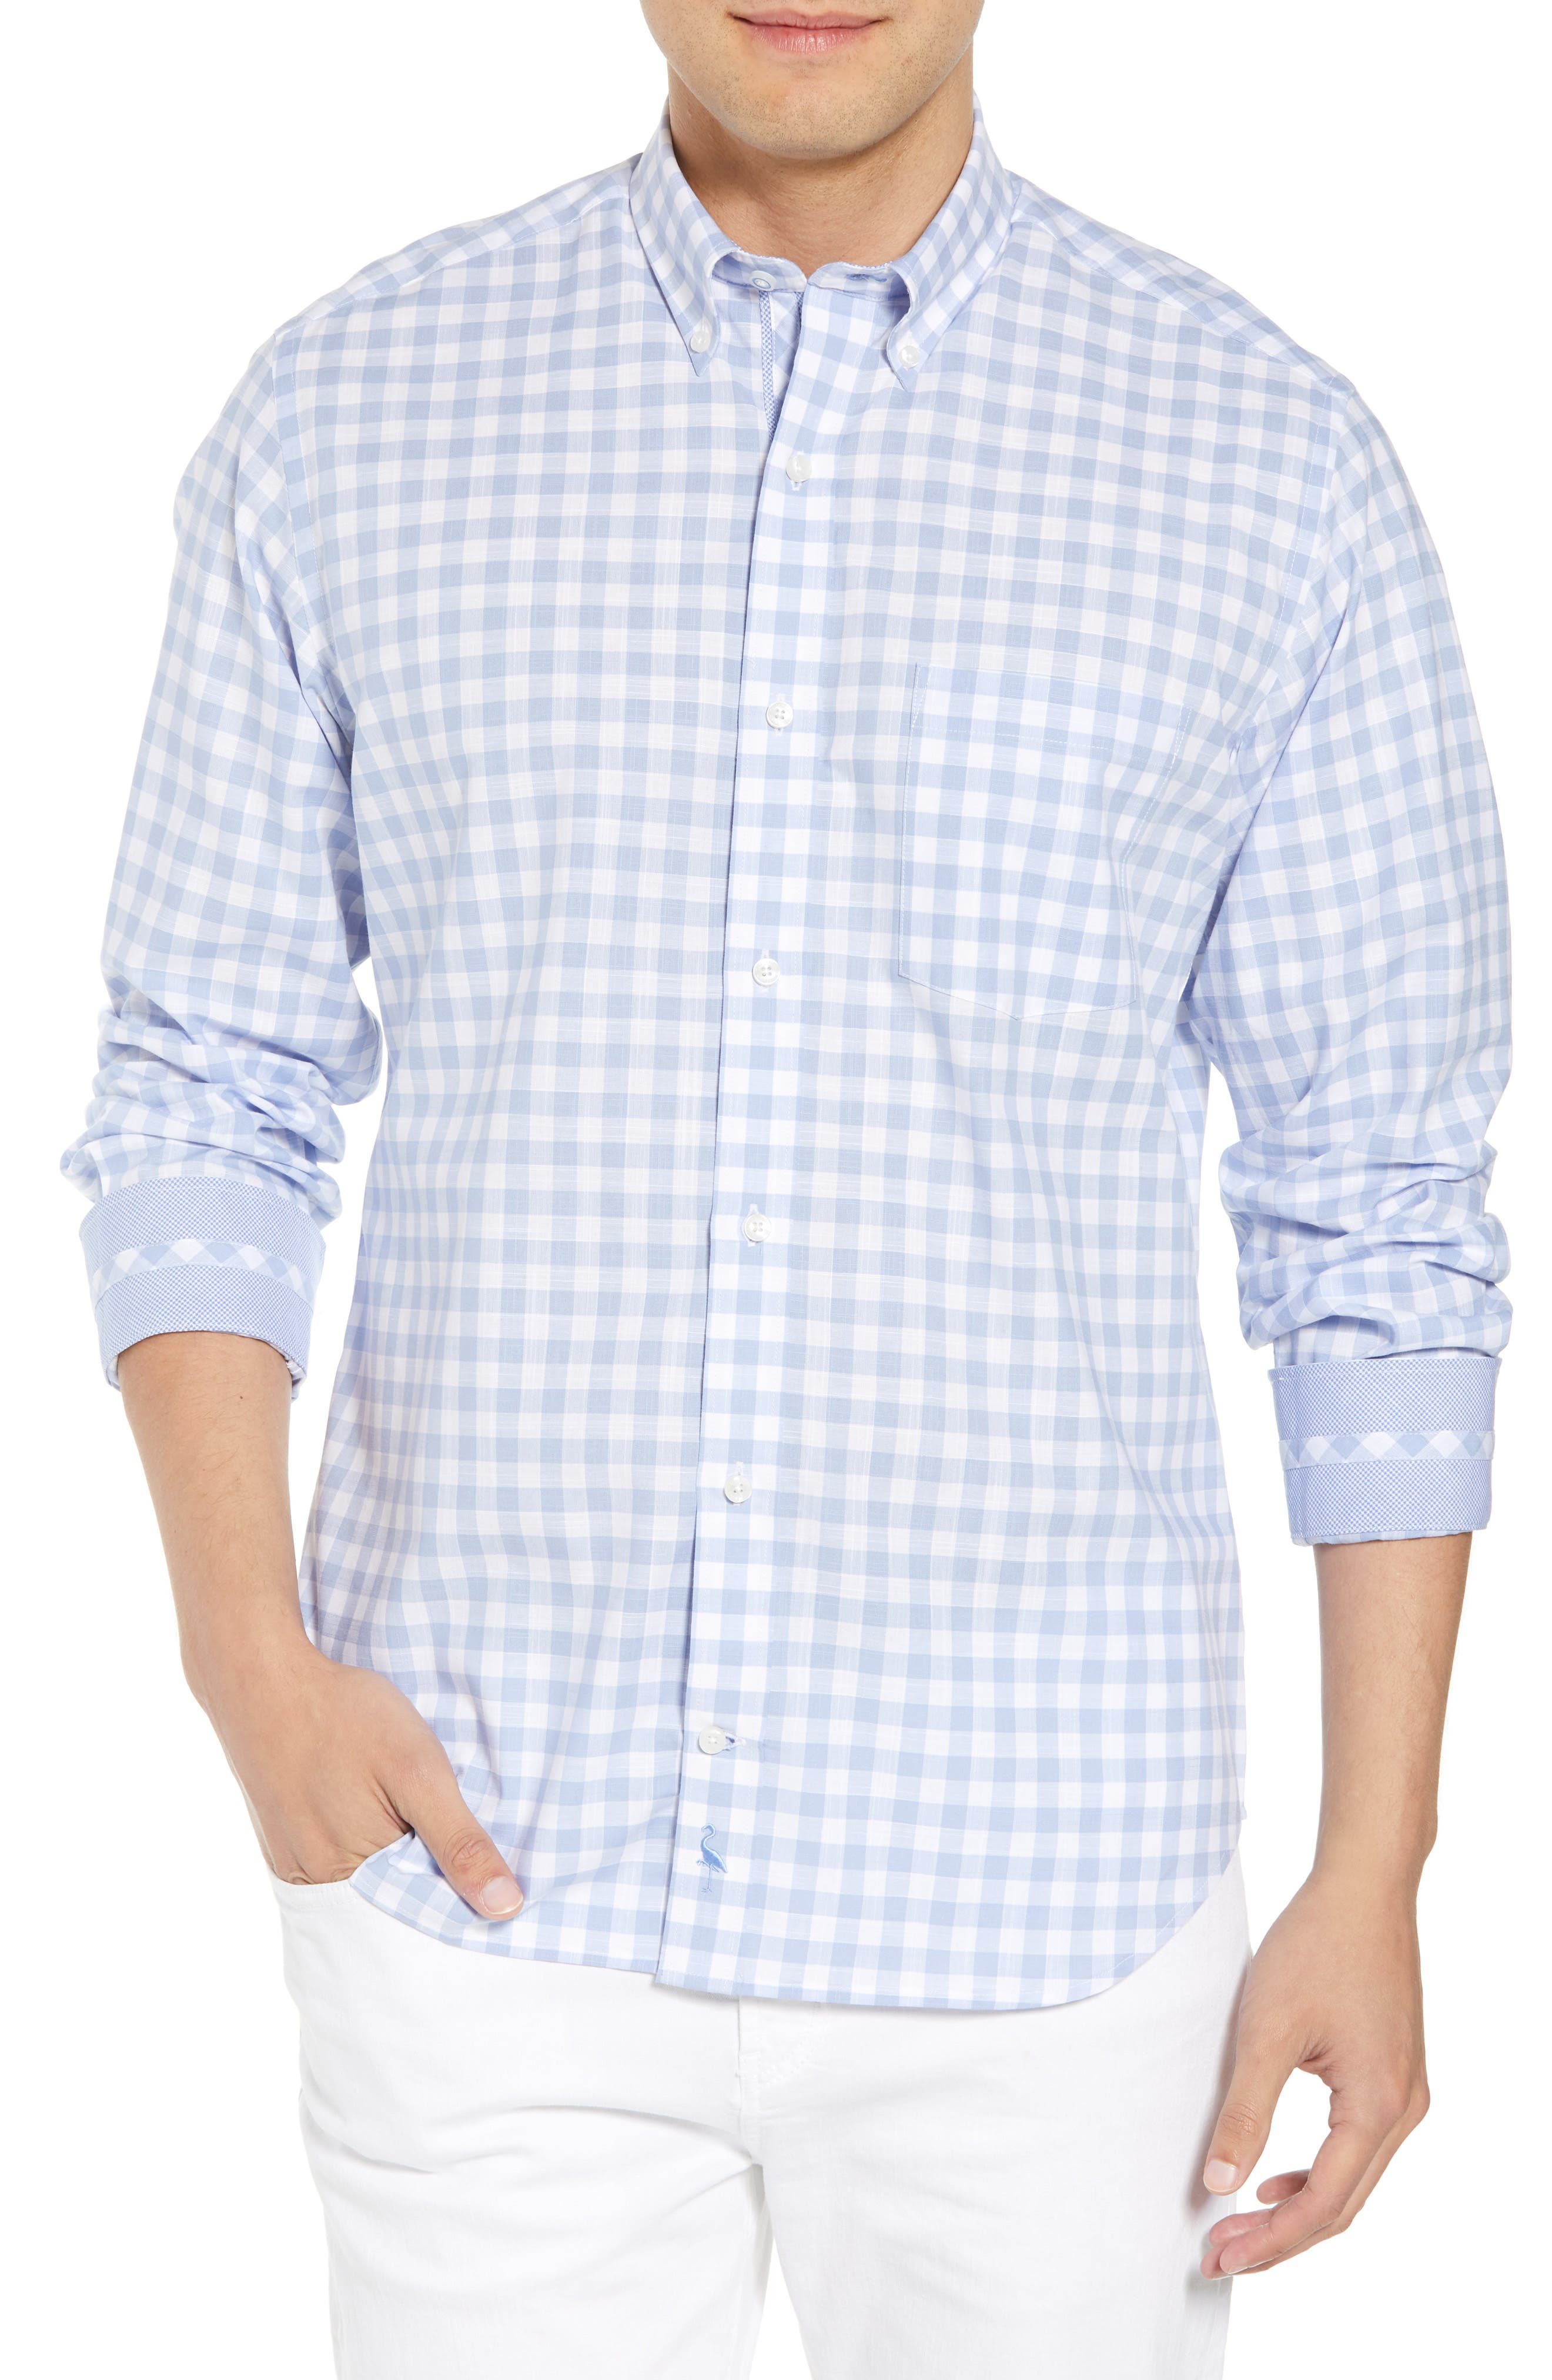 Eitenne Regular Fit Check Sport Shirt,                             Main thumbnail 1, color,